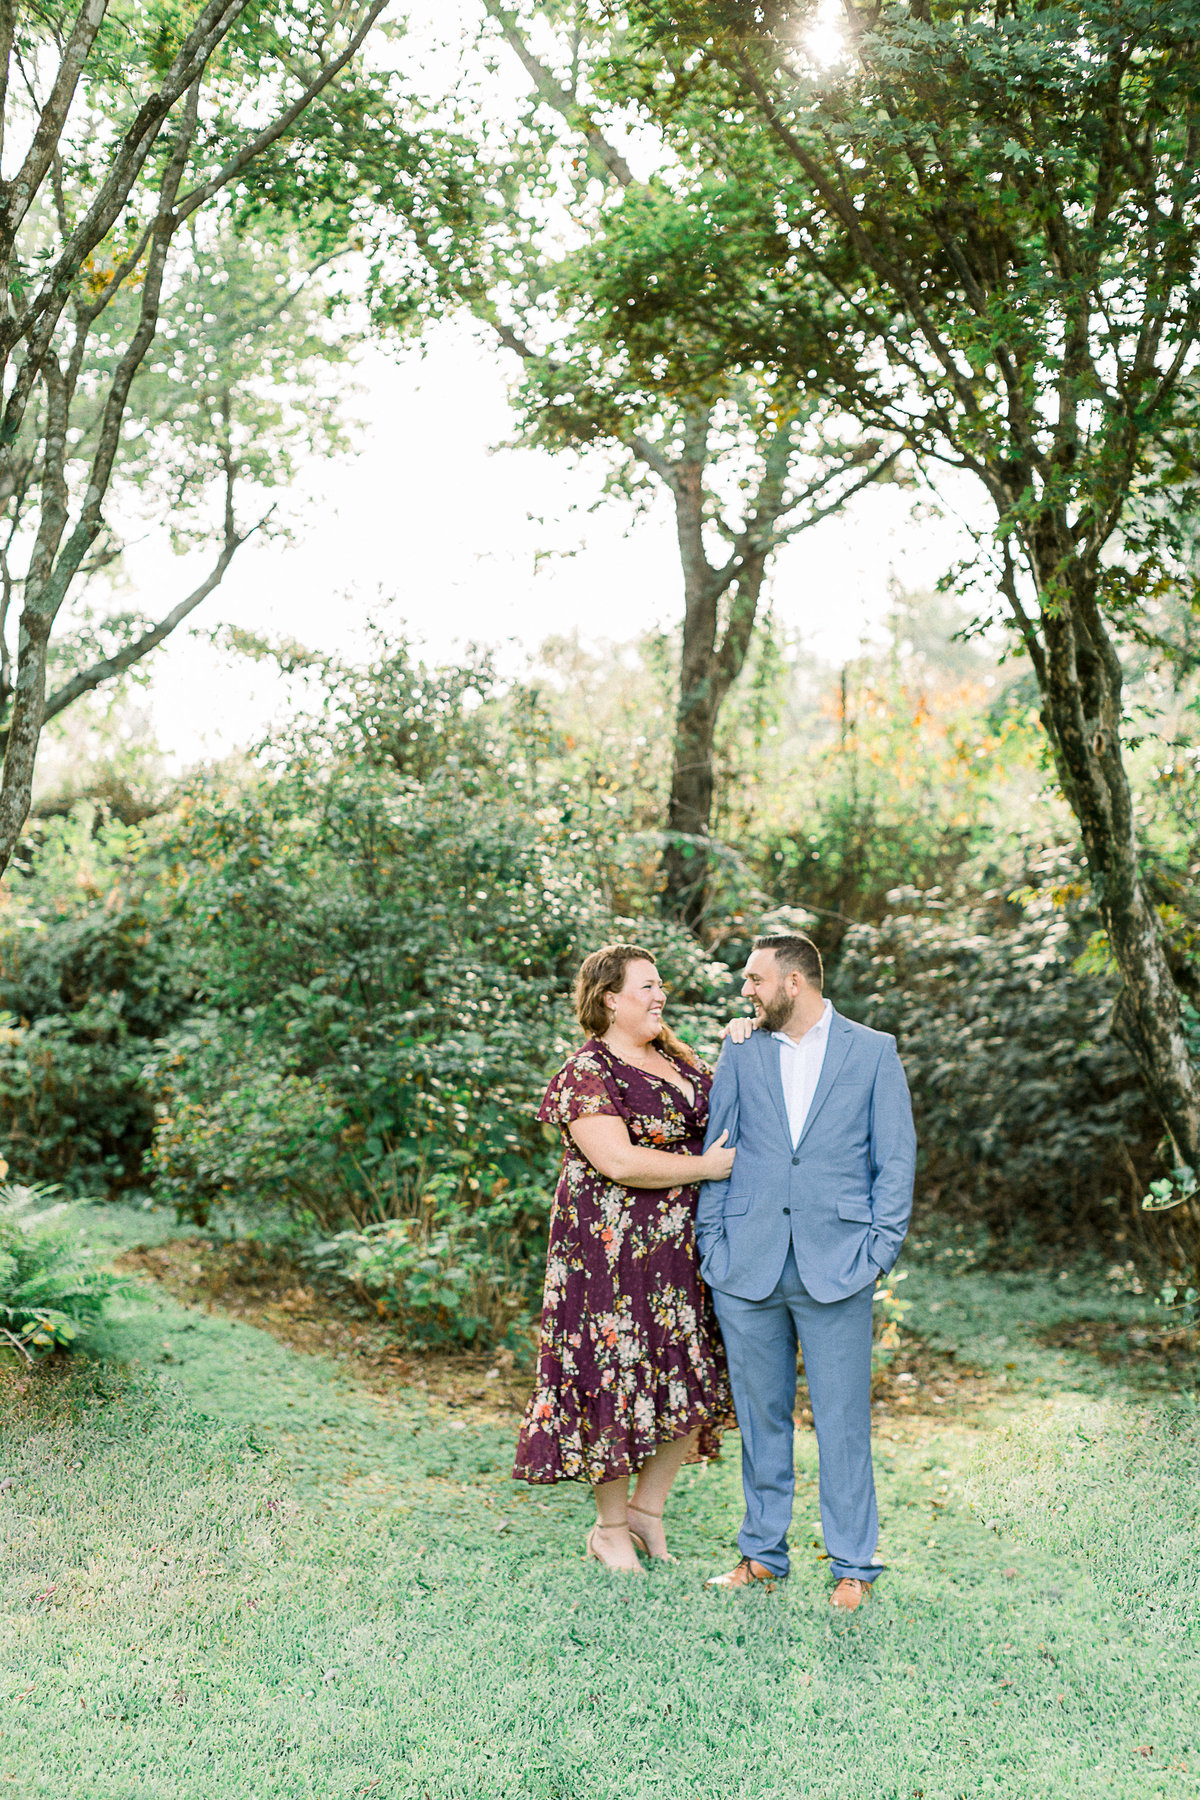 Lizzie Baker Photo _ Atlanta Engagement Photographer _ Atlanta Wedding Photographer _ Biltmore Wedding Photographer _ Foxhall Wedding Photographer _ Yew Dell Wedding7